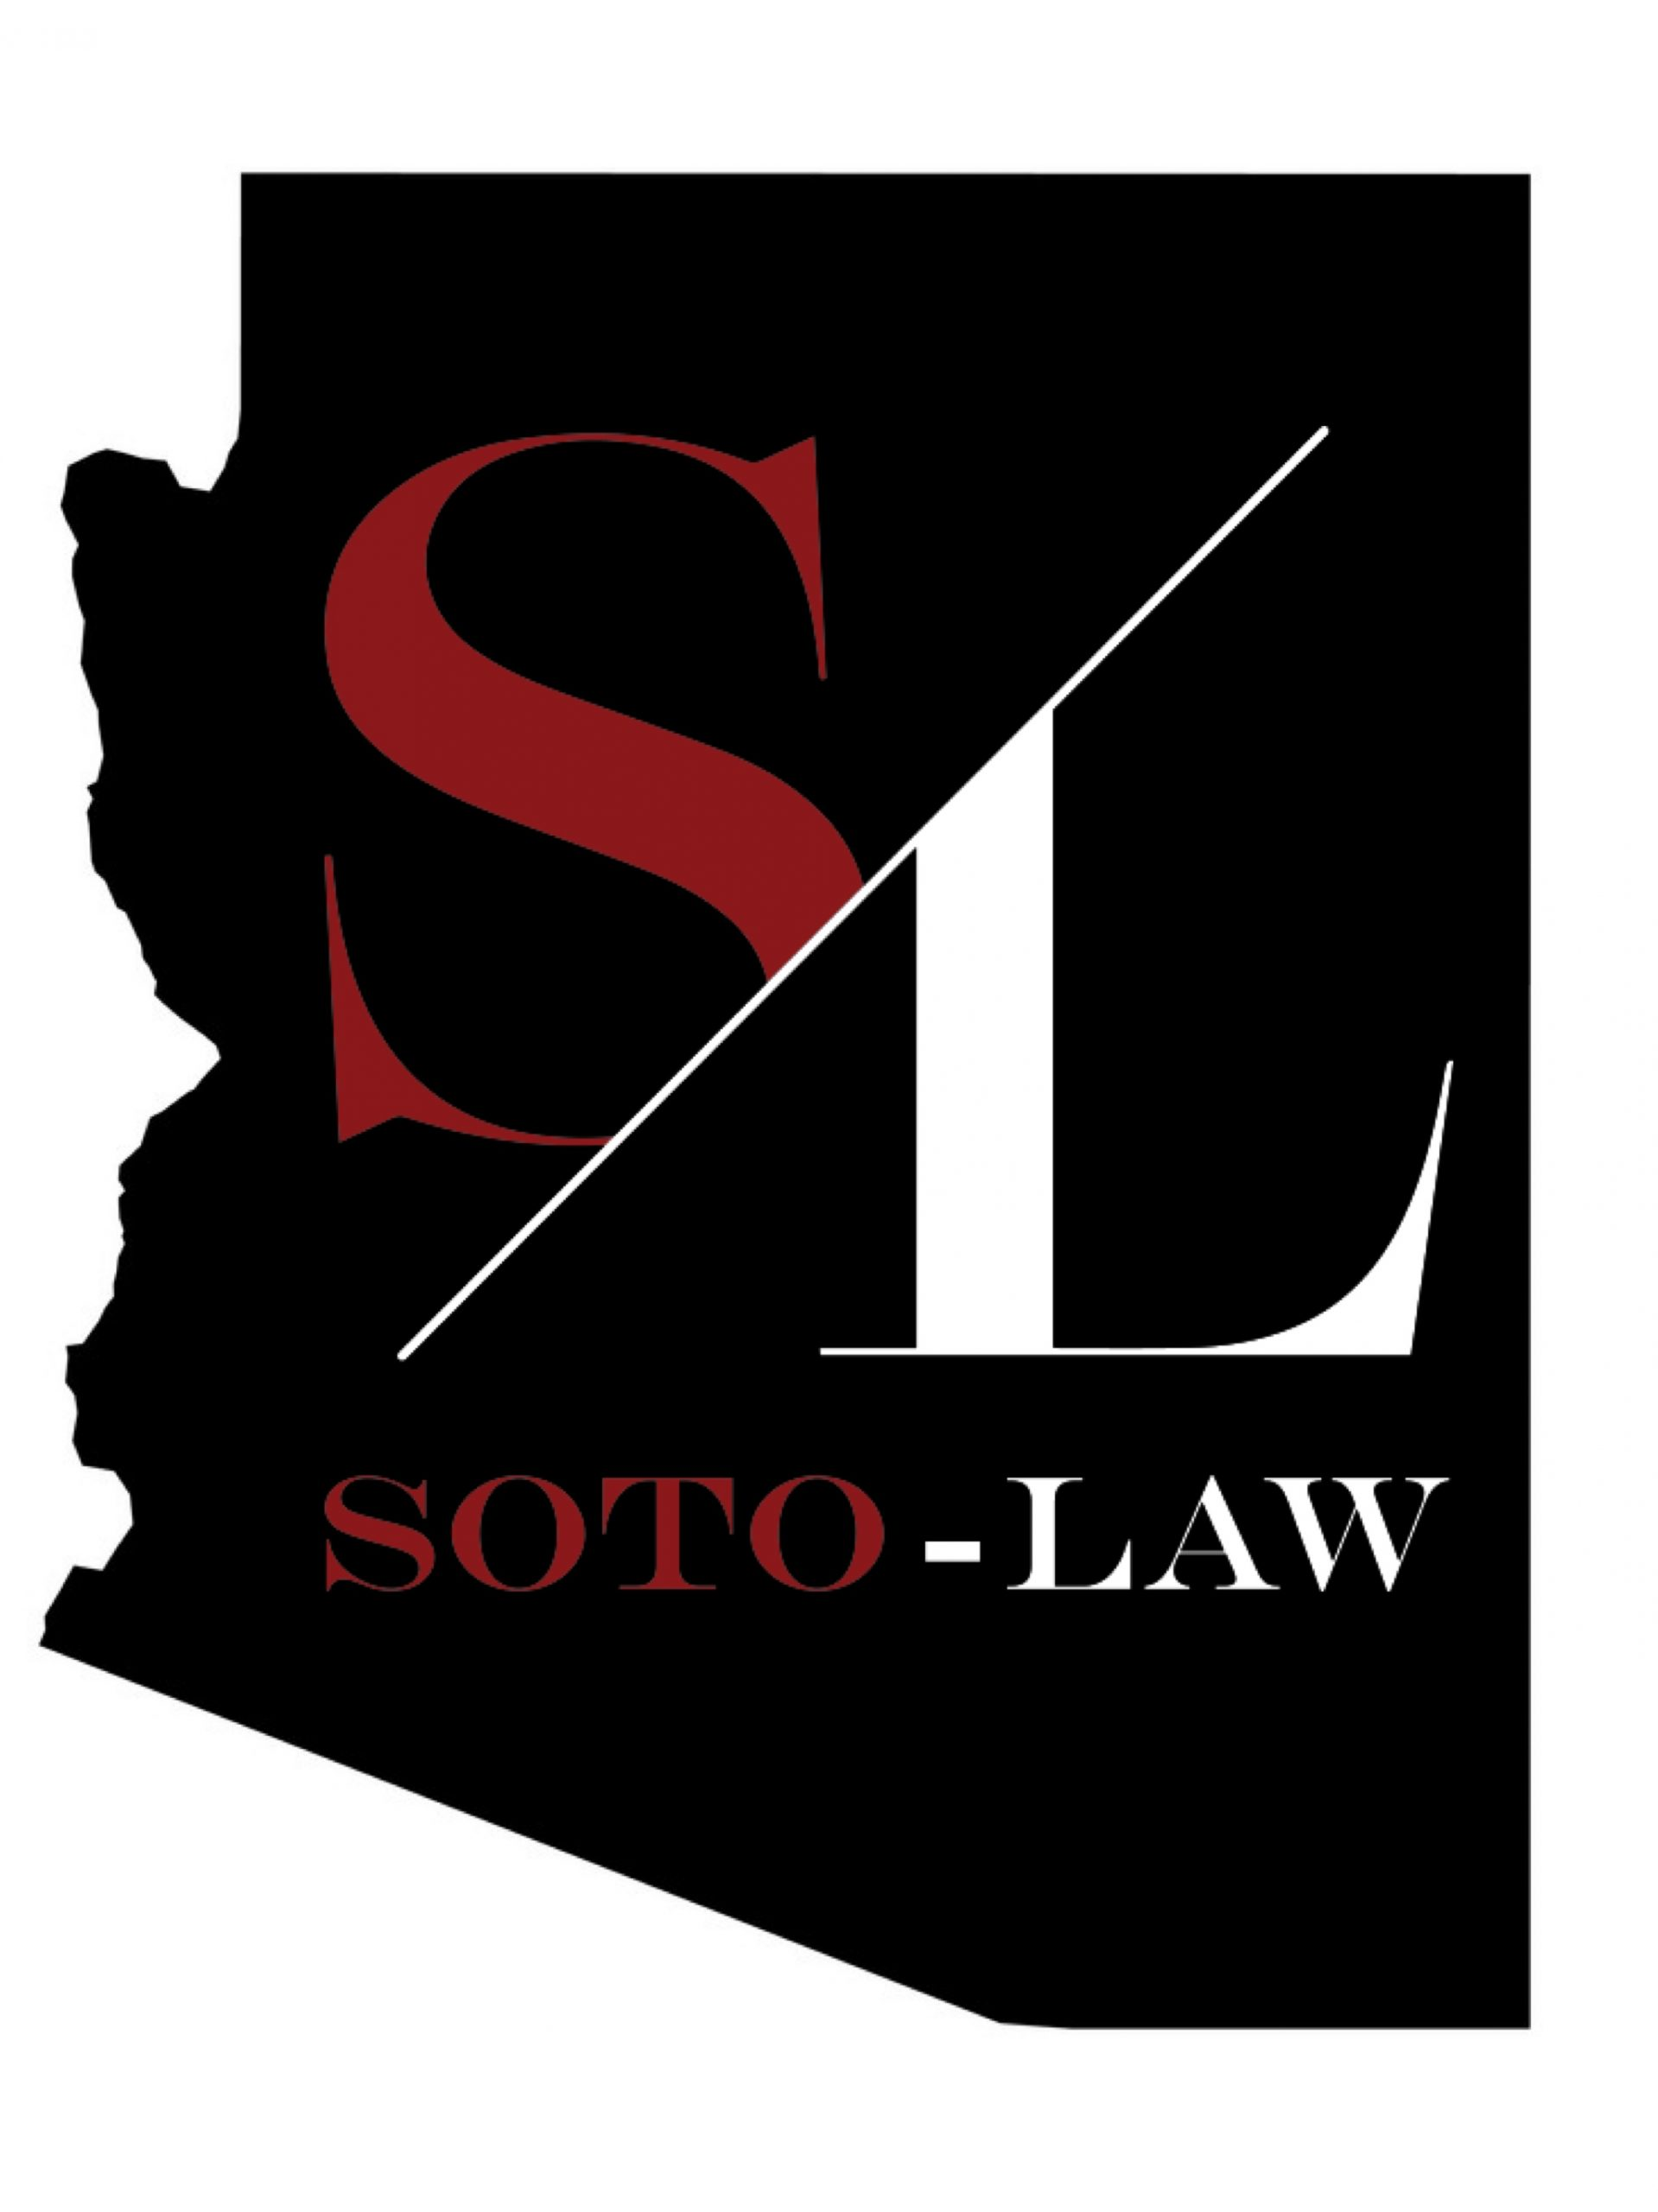 Arizona Drug Attorney - Greatest in 2021